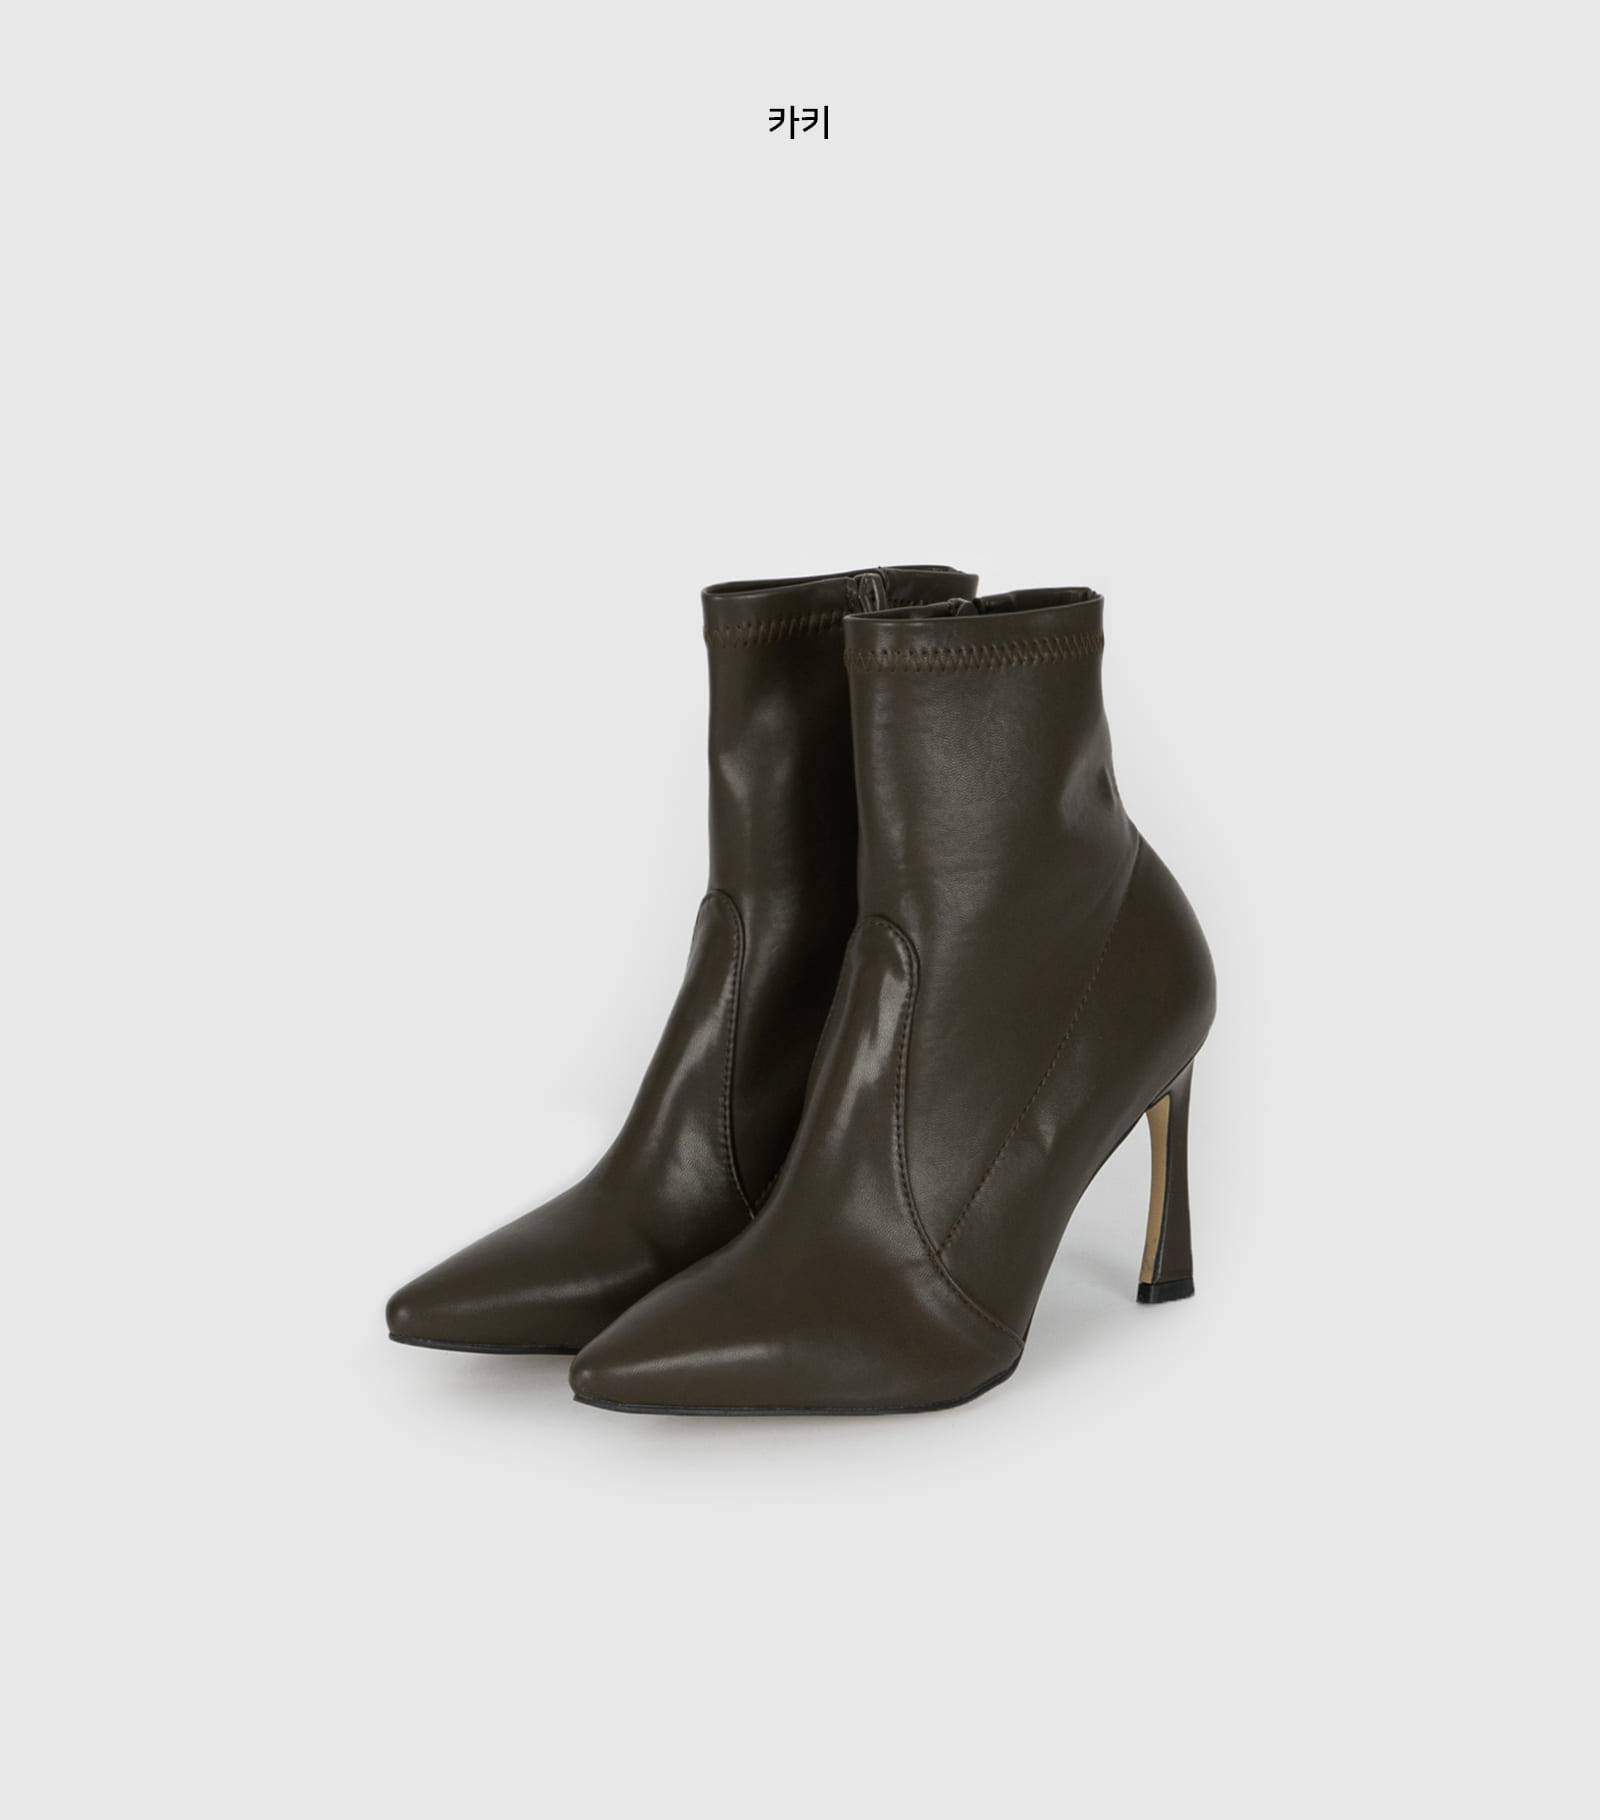 Storm Stiletto high heel ankle boots